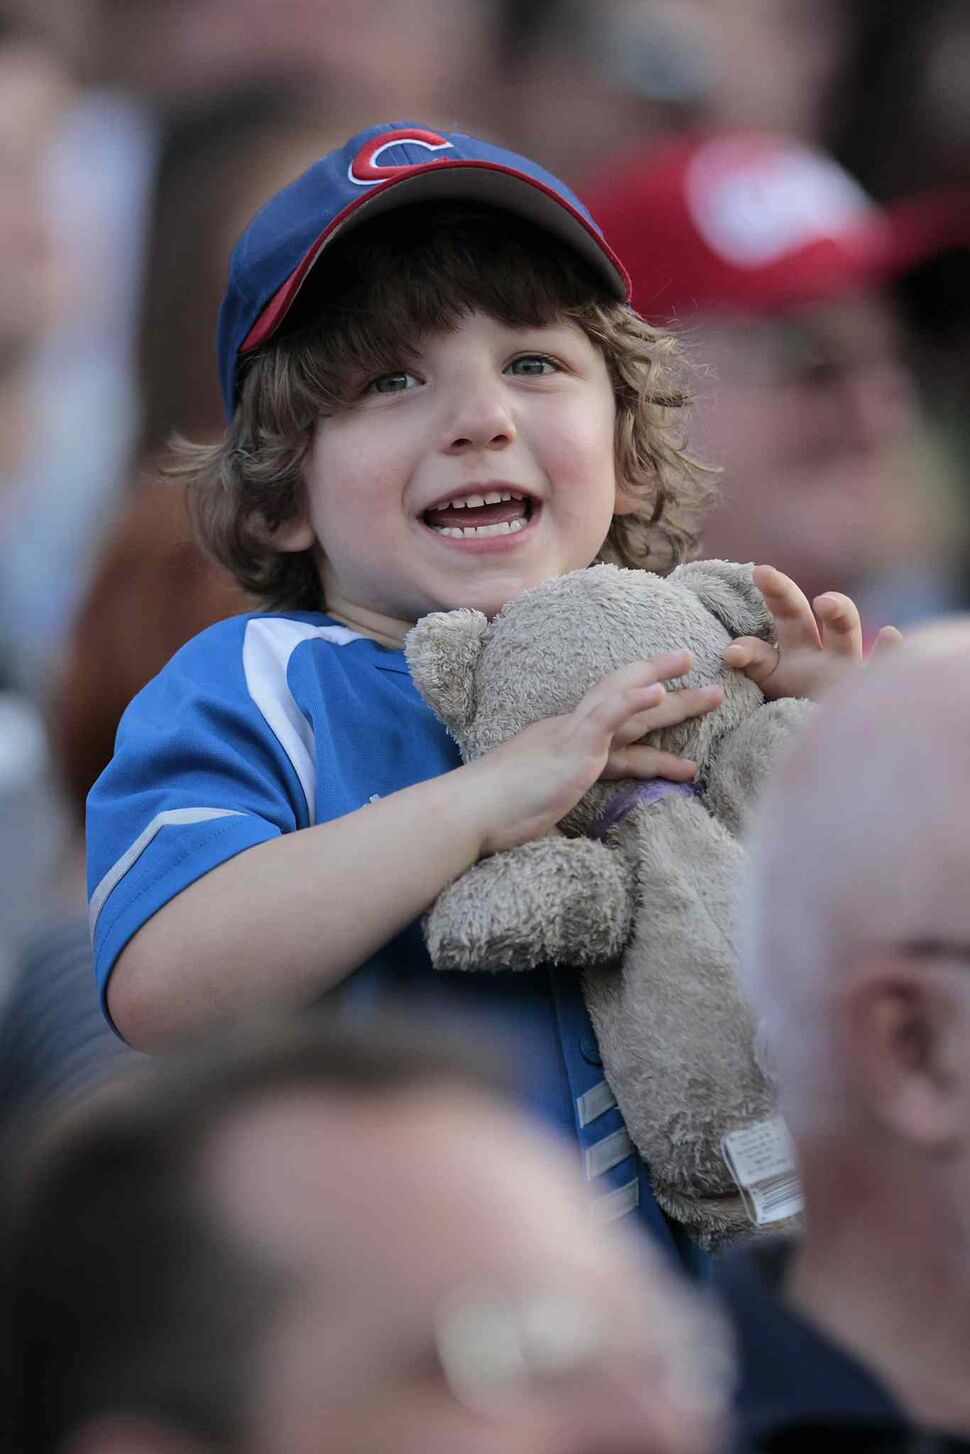 A young fan enjoys the game. (John Woods / Winnipeg Free Press)